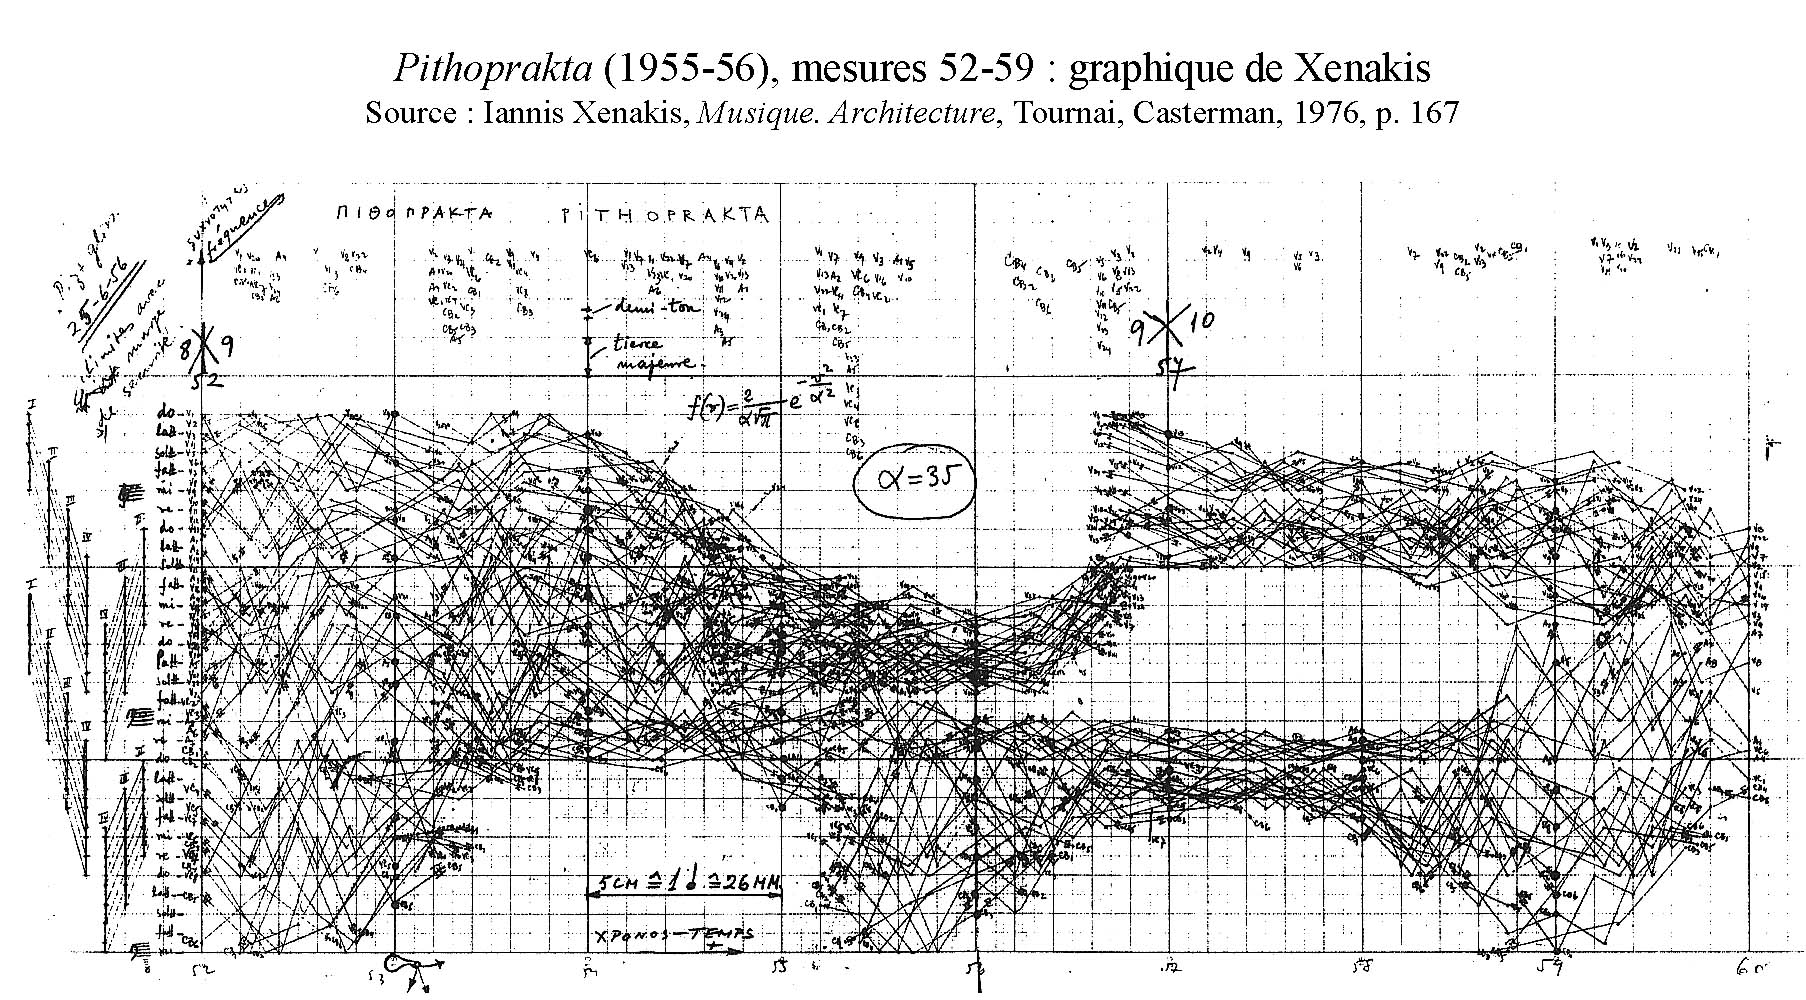 A Graphic by Iannis Xenakis Pithoprakta (1955-56).Formalising musical note pitch and duration into vectoral algorithms Image Reference: (SOLOMOS,Makis, 2013) (MATOSSIAN,Nouritza, 2005).